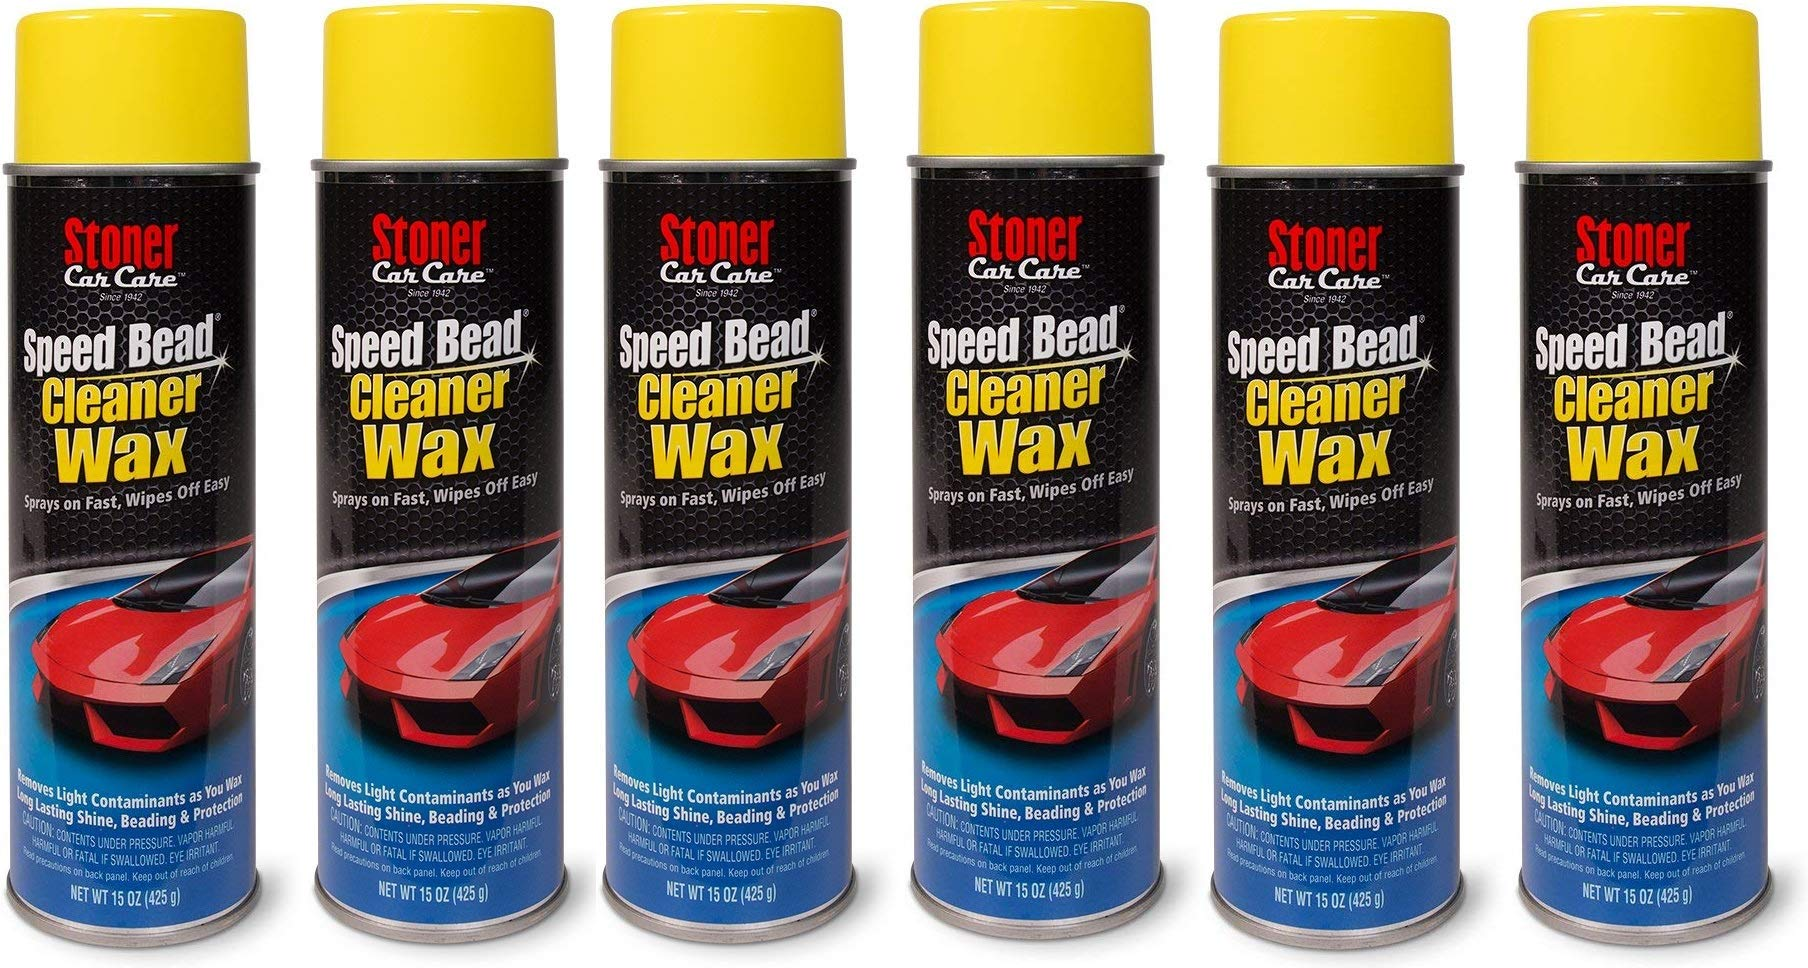 Stoner Car Care 91354 Speed Bead Quick Detailer - 15-Ounce (15 oz (Pack of 6))